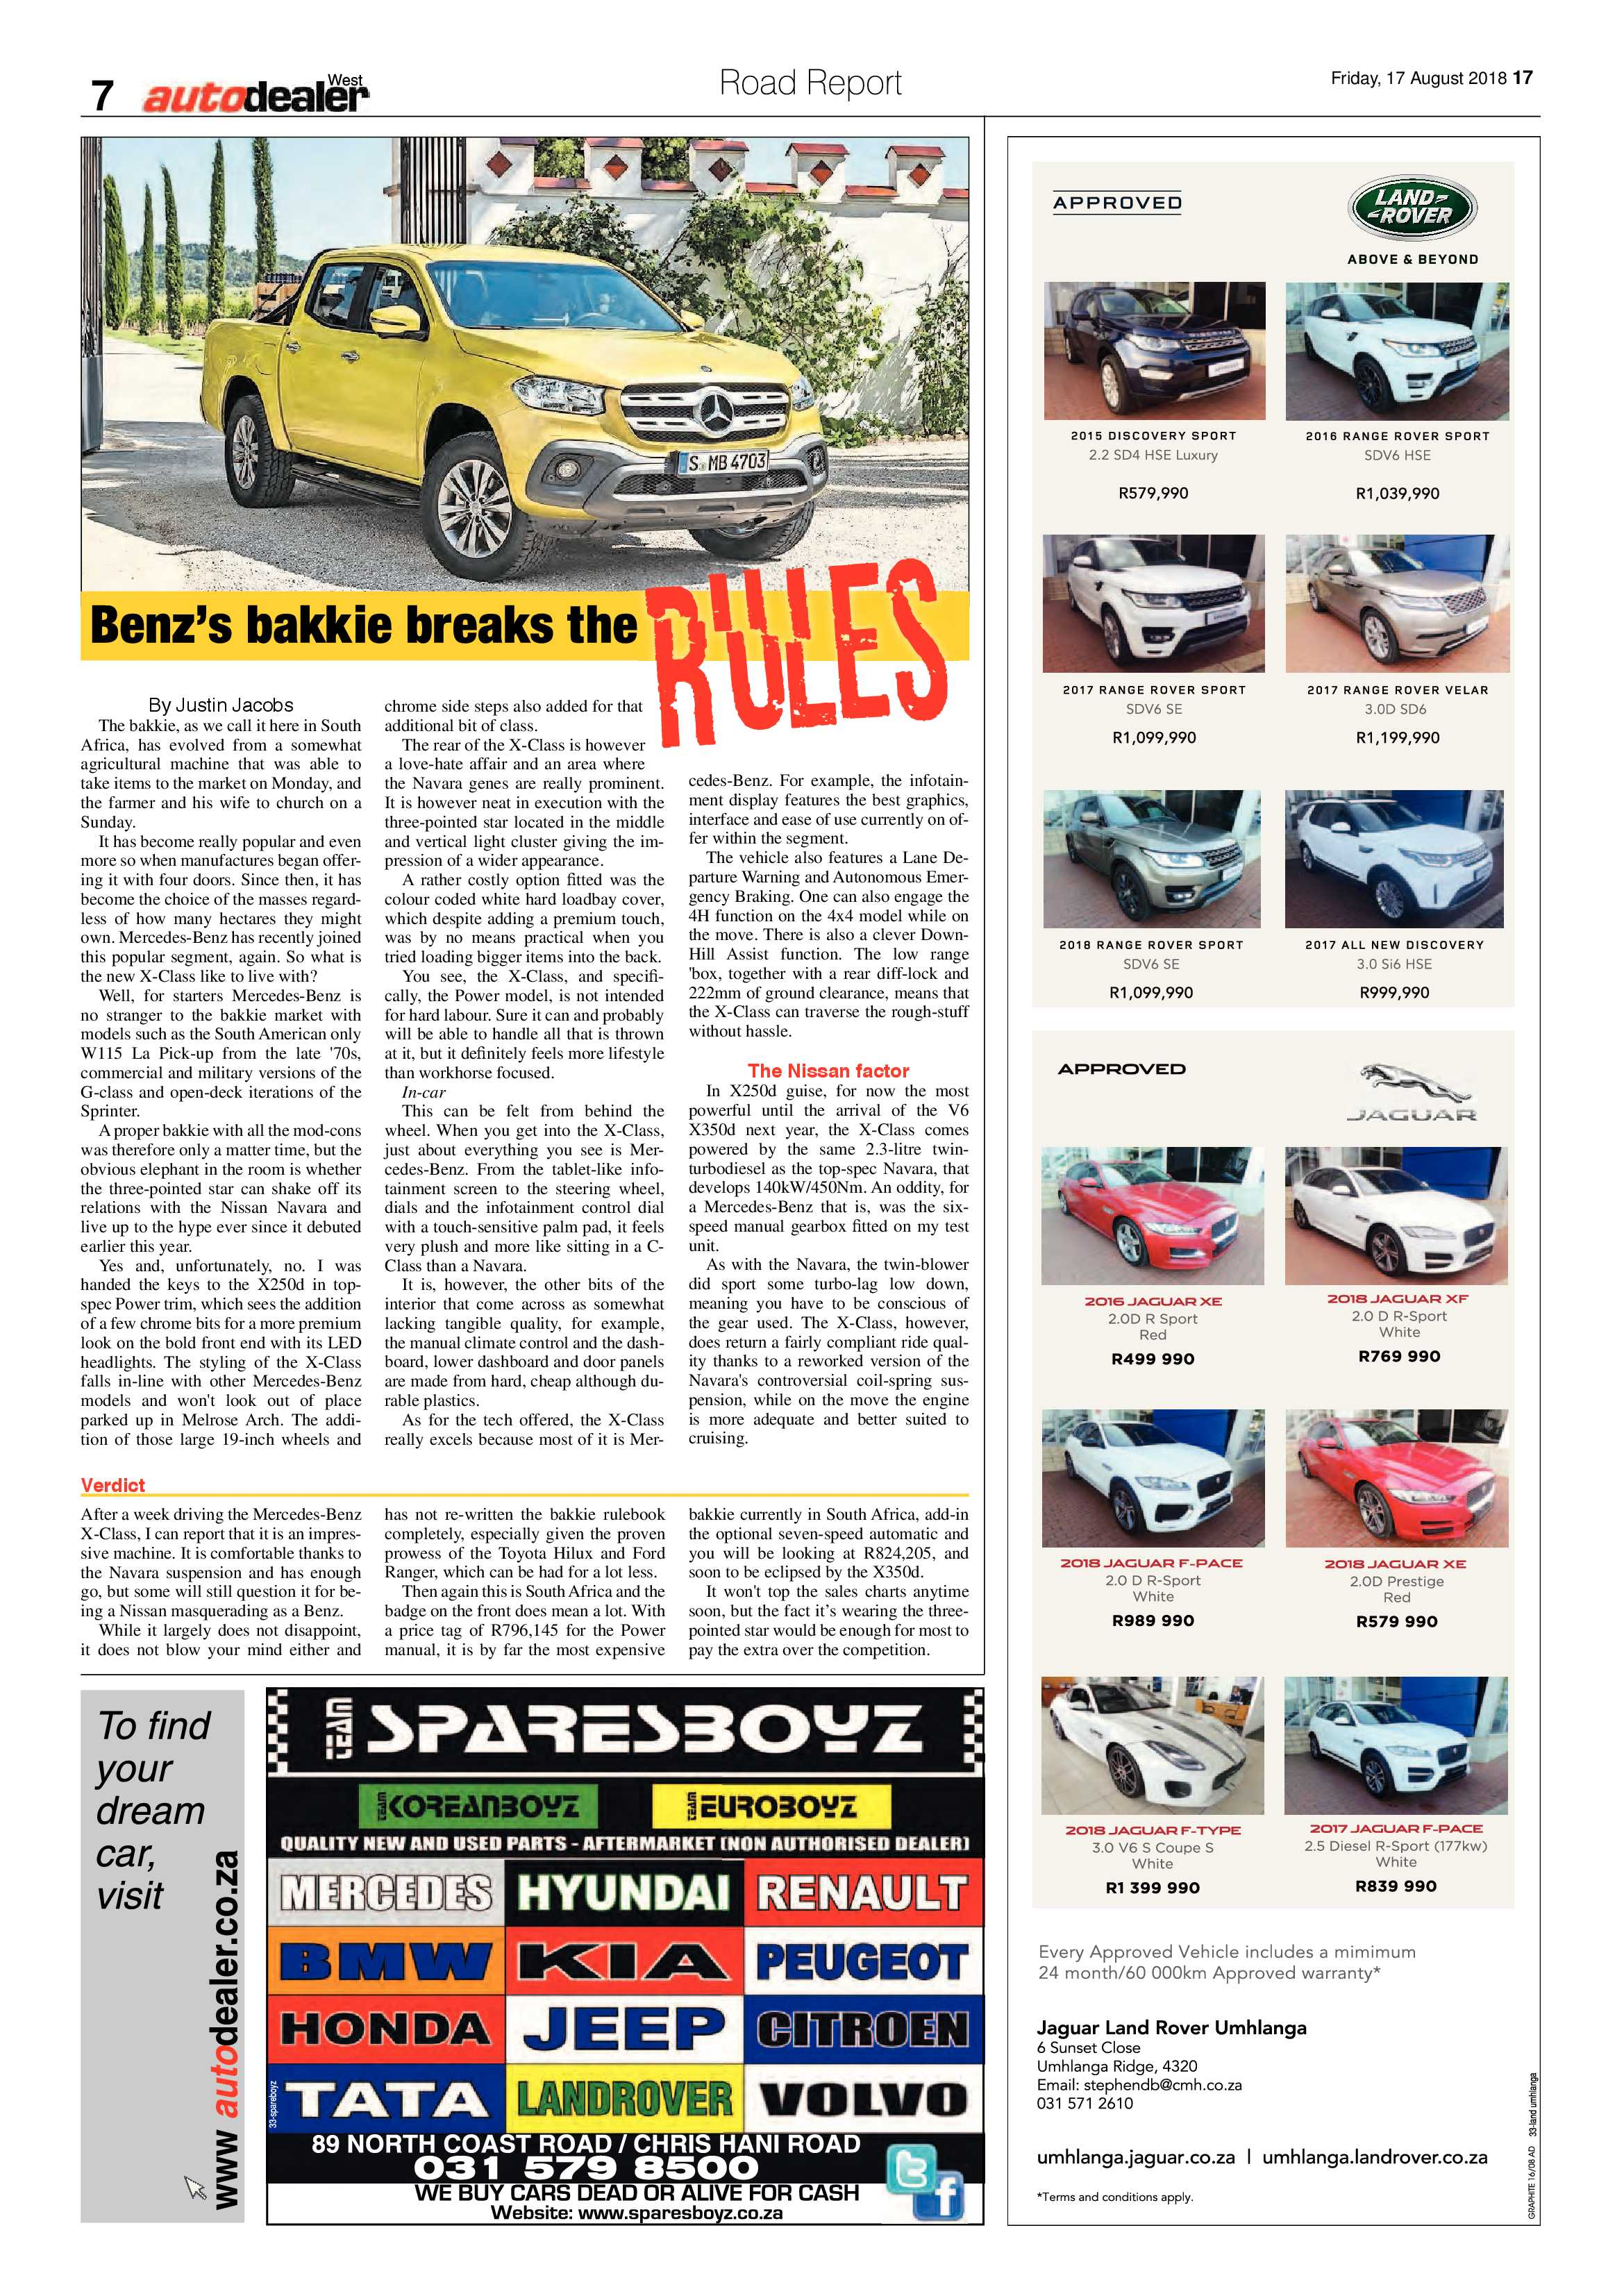 berea-mail-17-august-2018-epapers-page-17